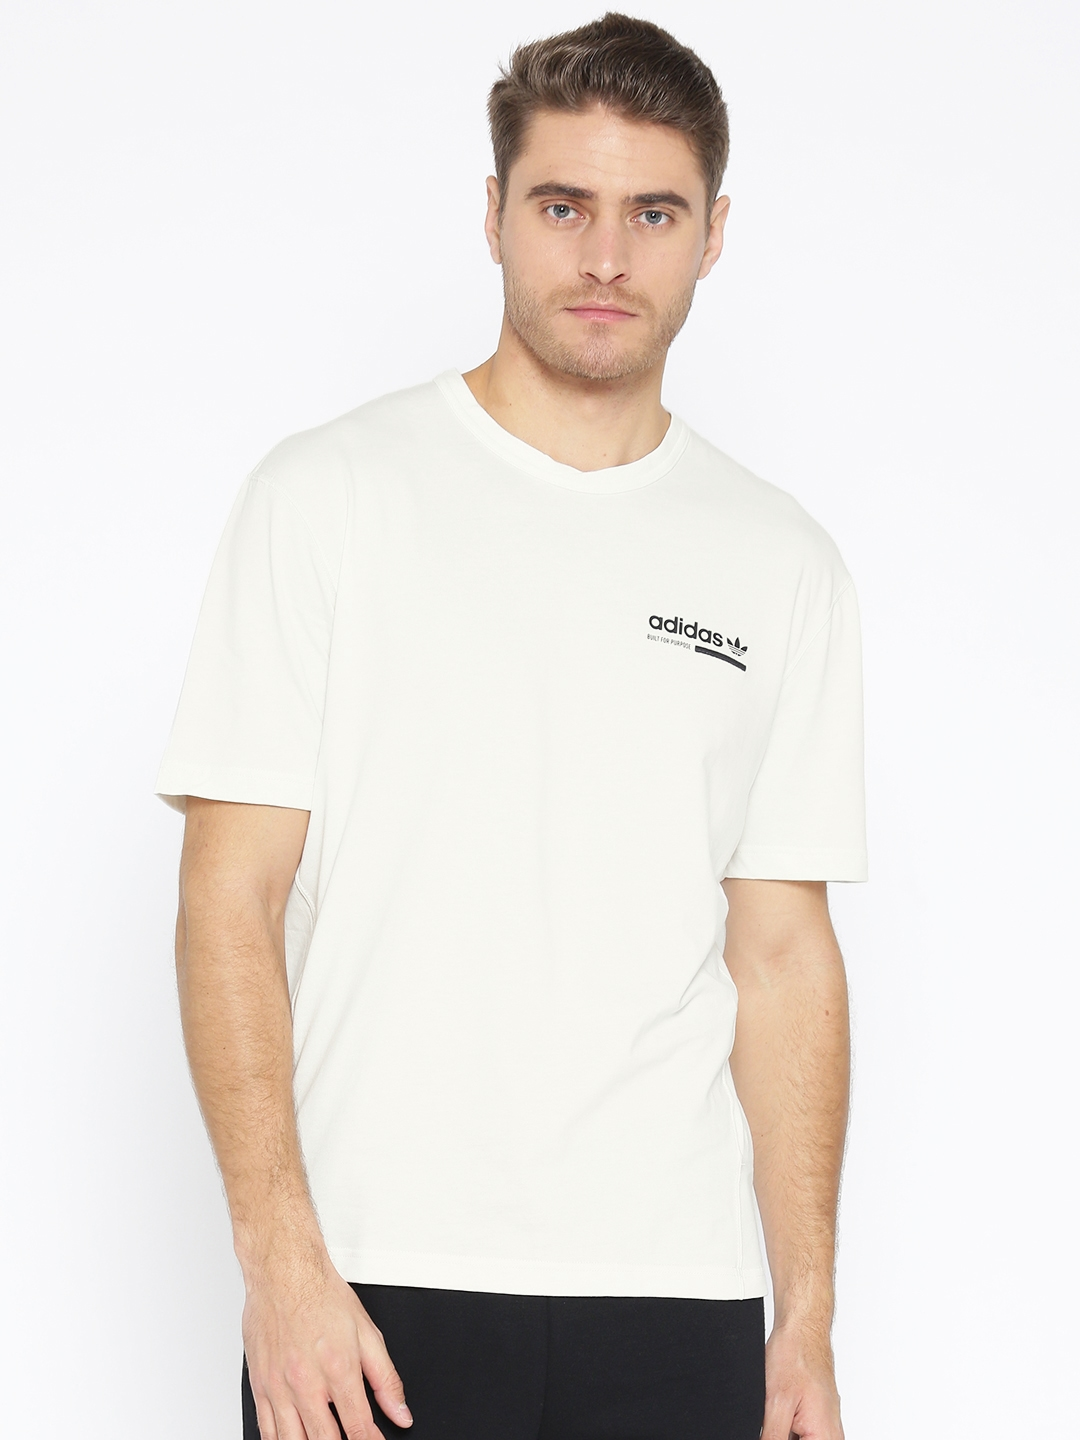 943fb1e49 ADIDAS Originals Men White Solid Kaval Graphic T-shirt With Printed Back